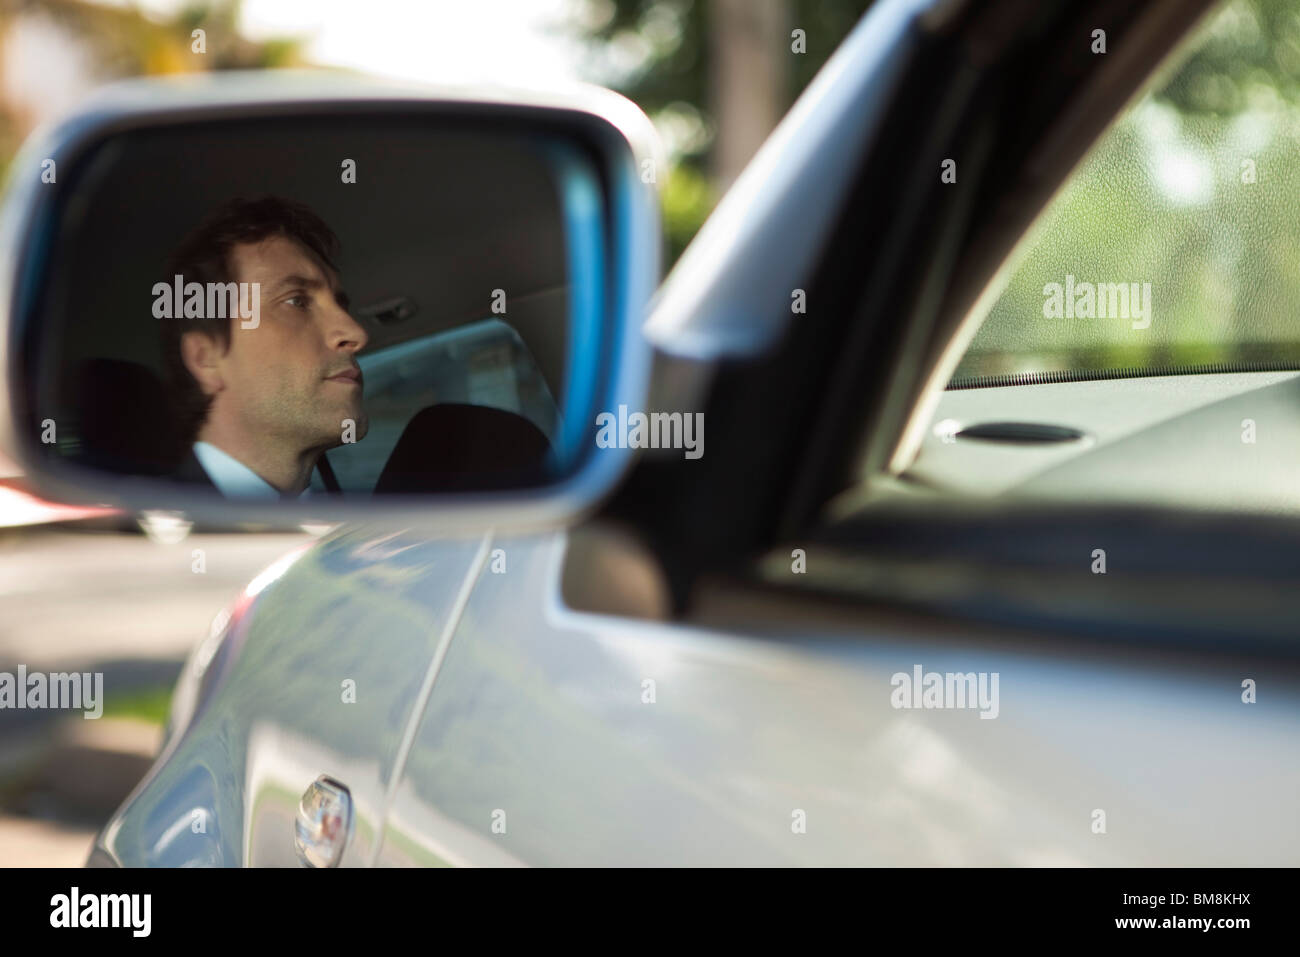 Reflection of car driver seen in side-view mirror - Stock Image